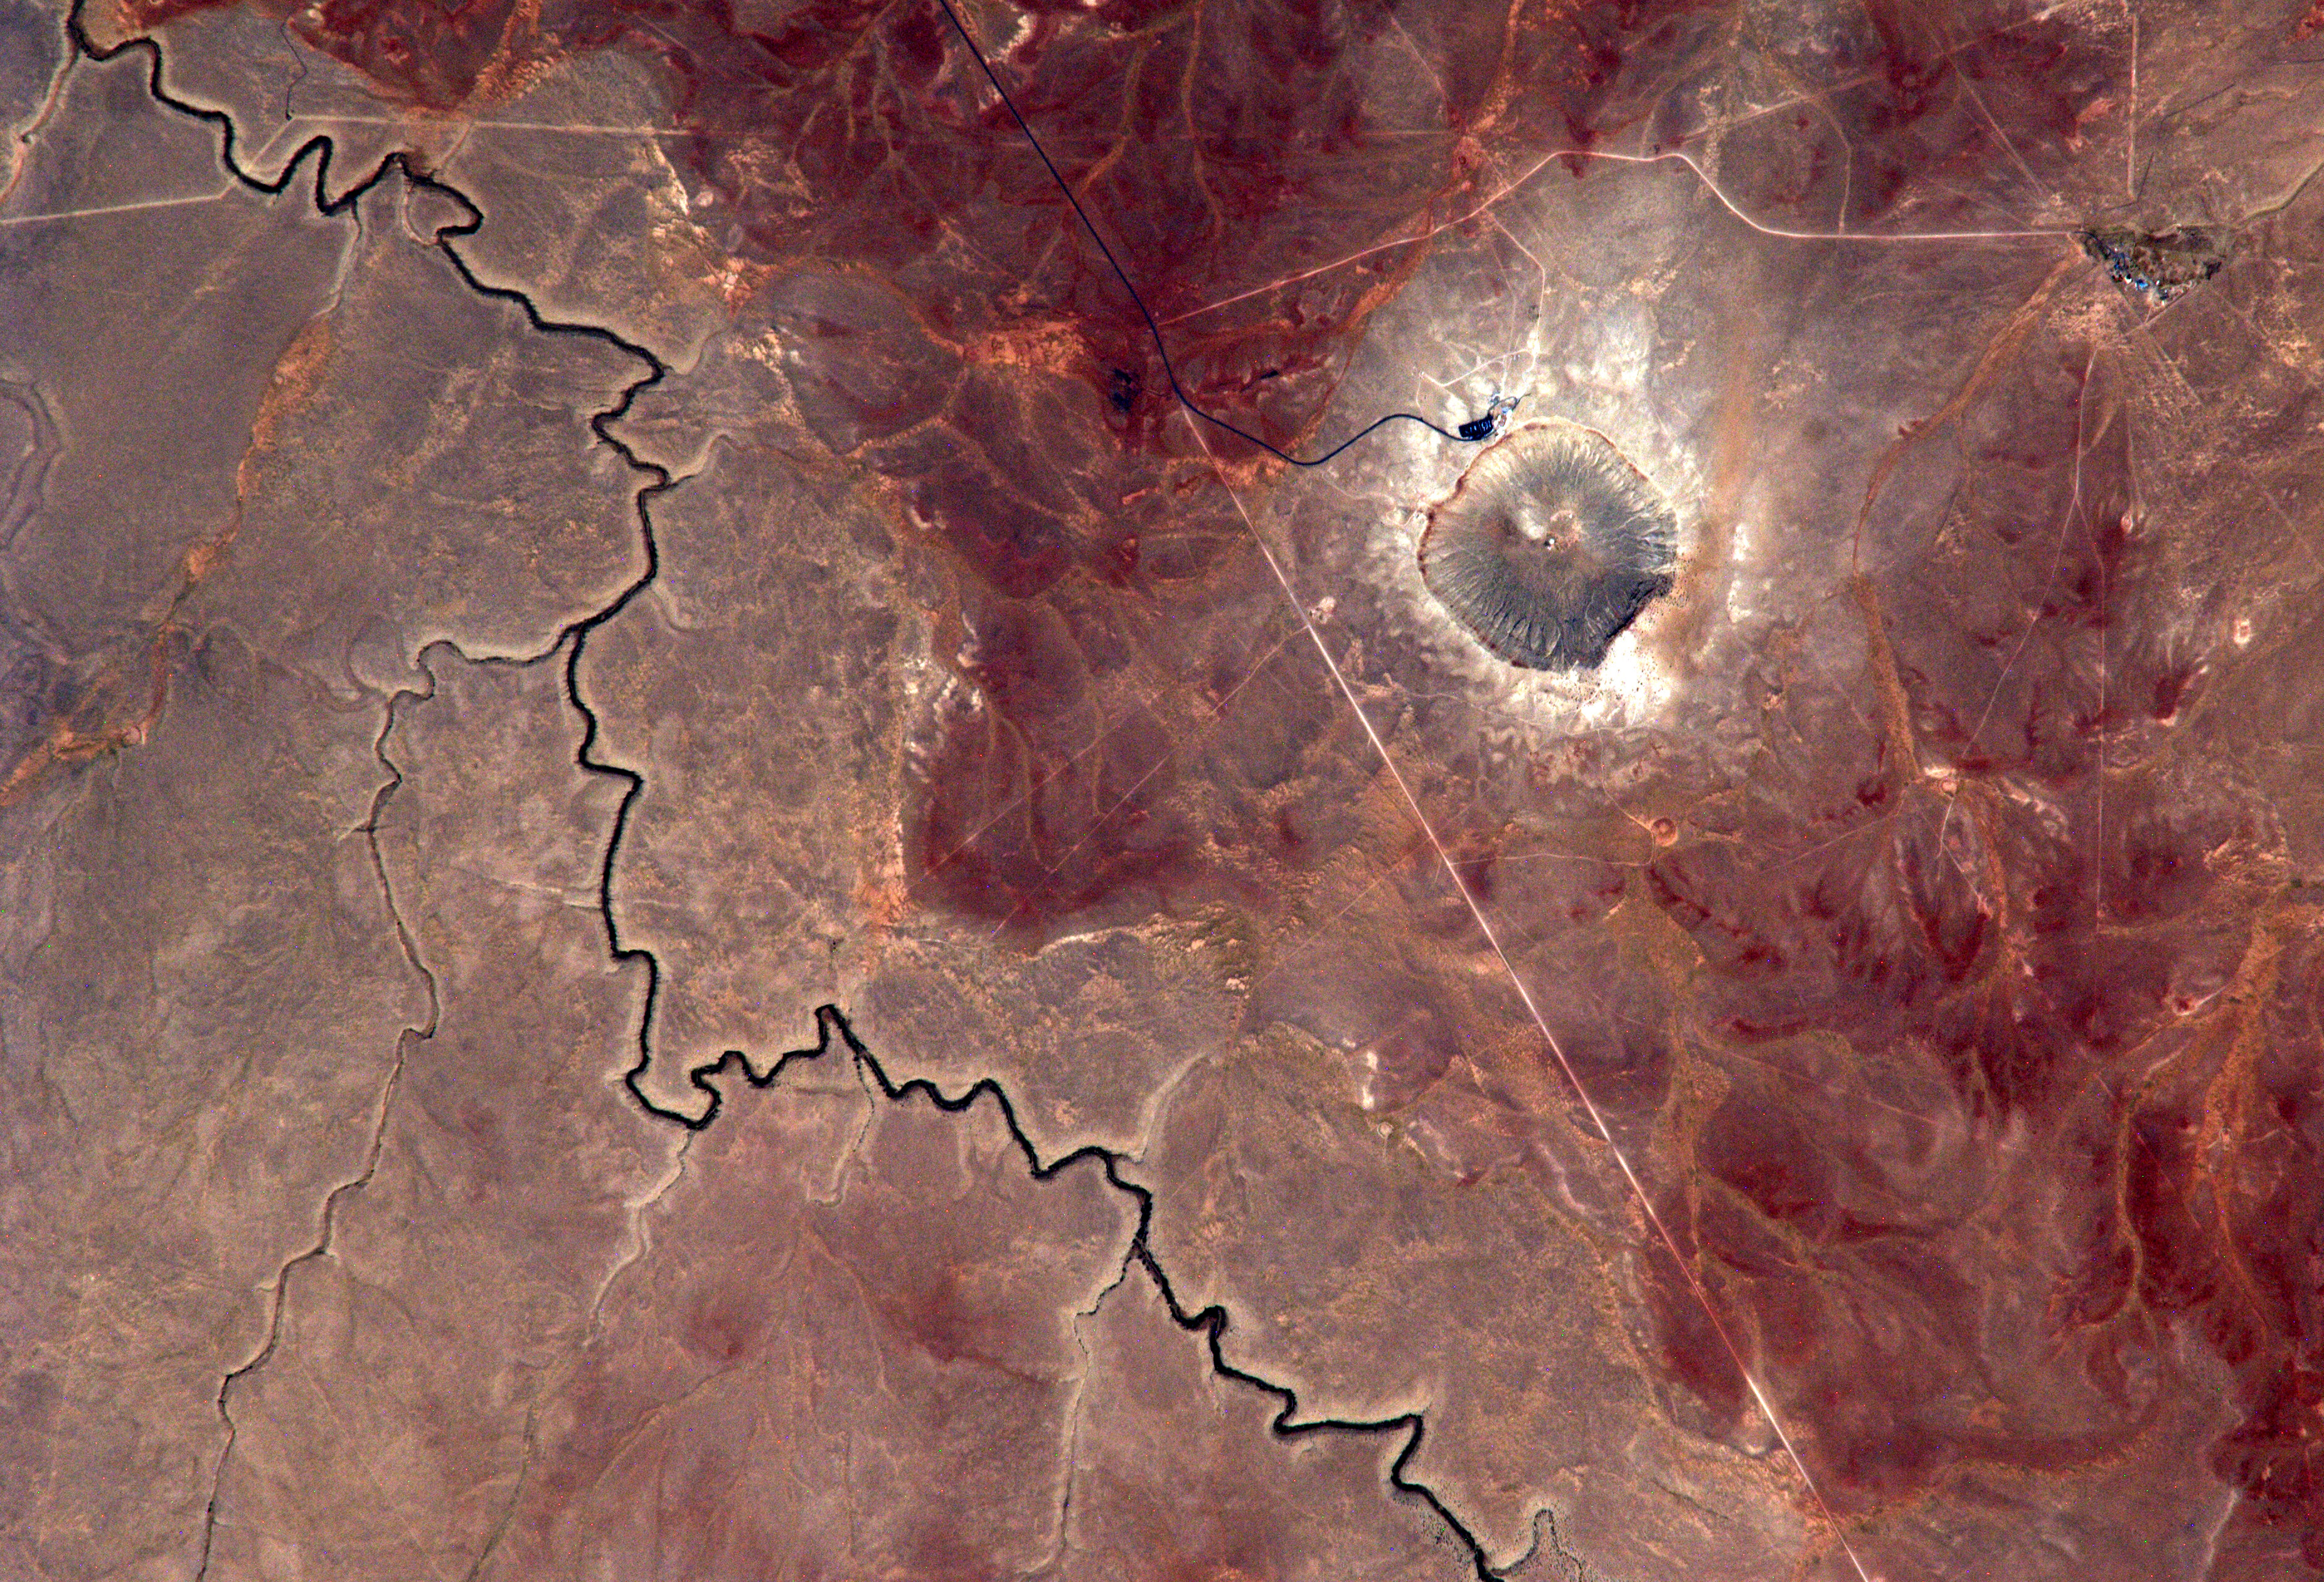 Space In Images 2014 08 Meteor Crater Arizona